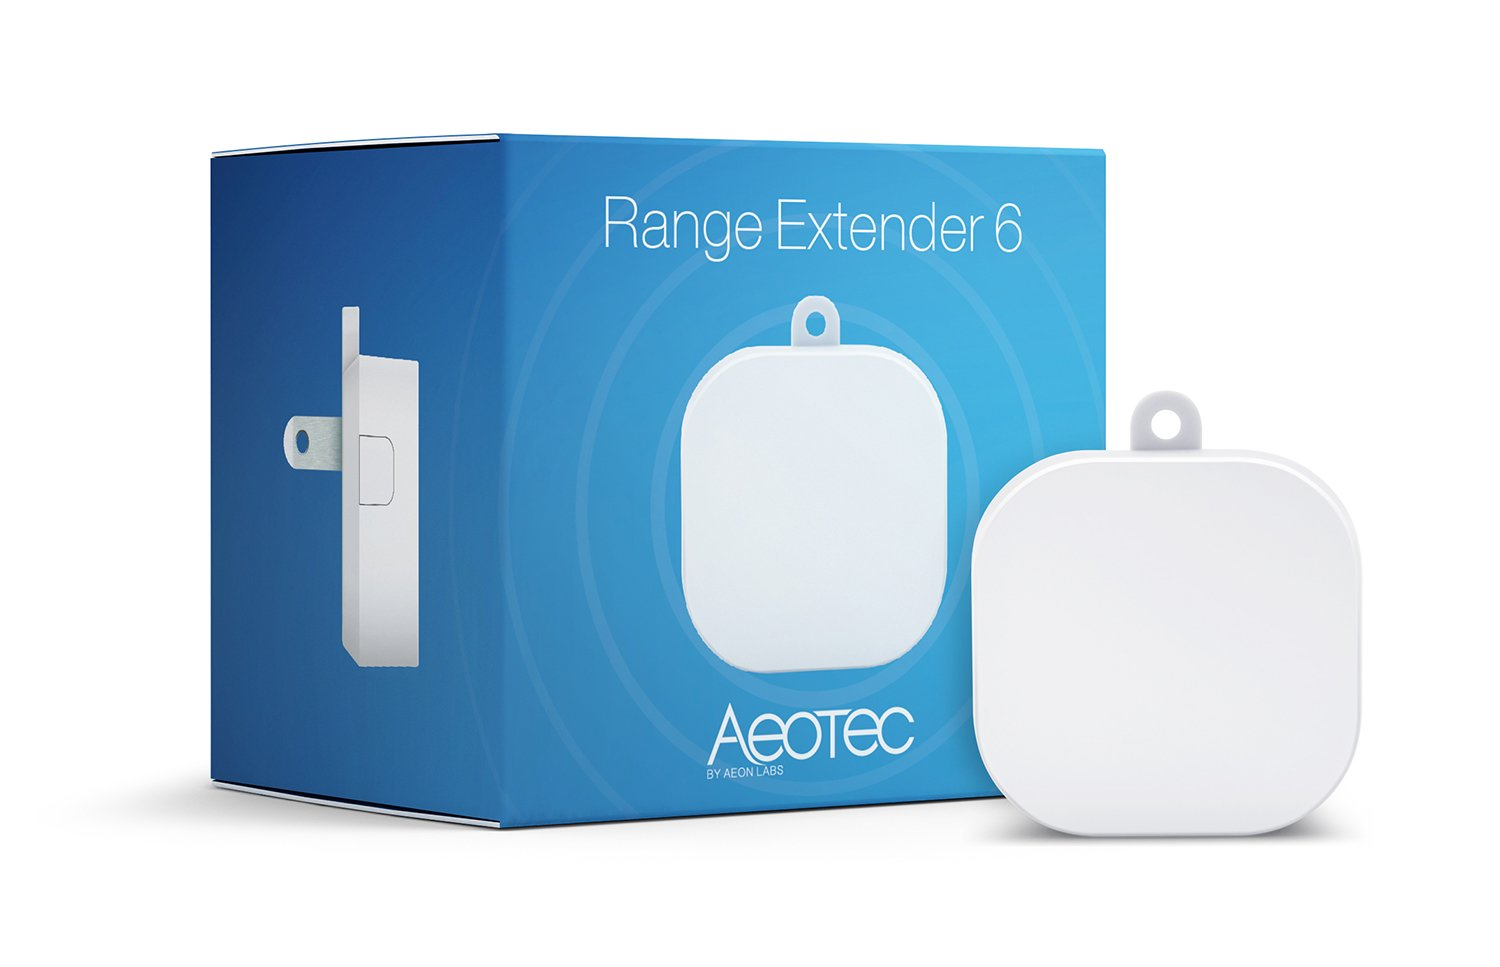 Aeotec Range Extender 6, Z-Wave Plus repeater by Aeon Labs